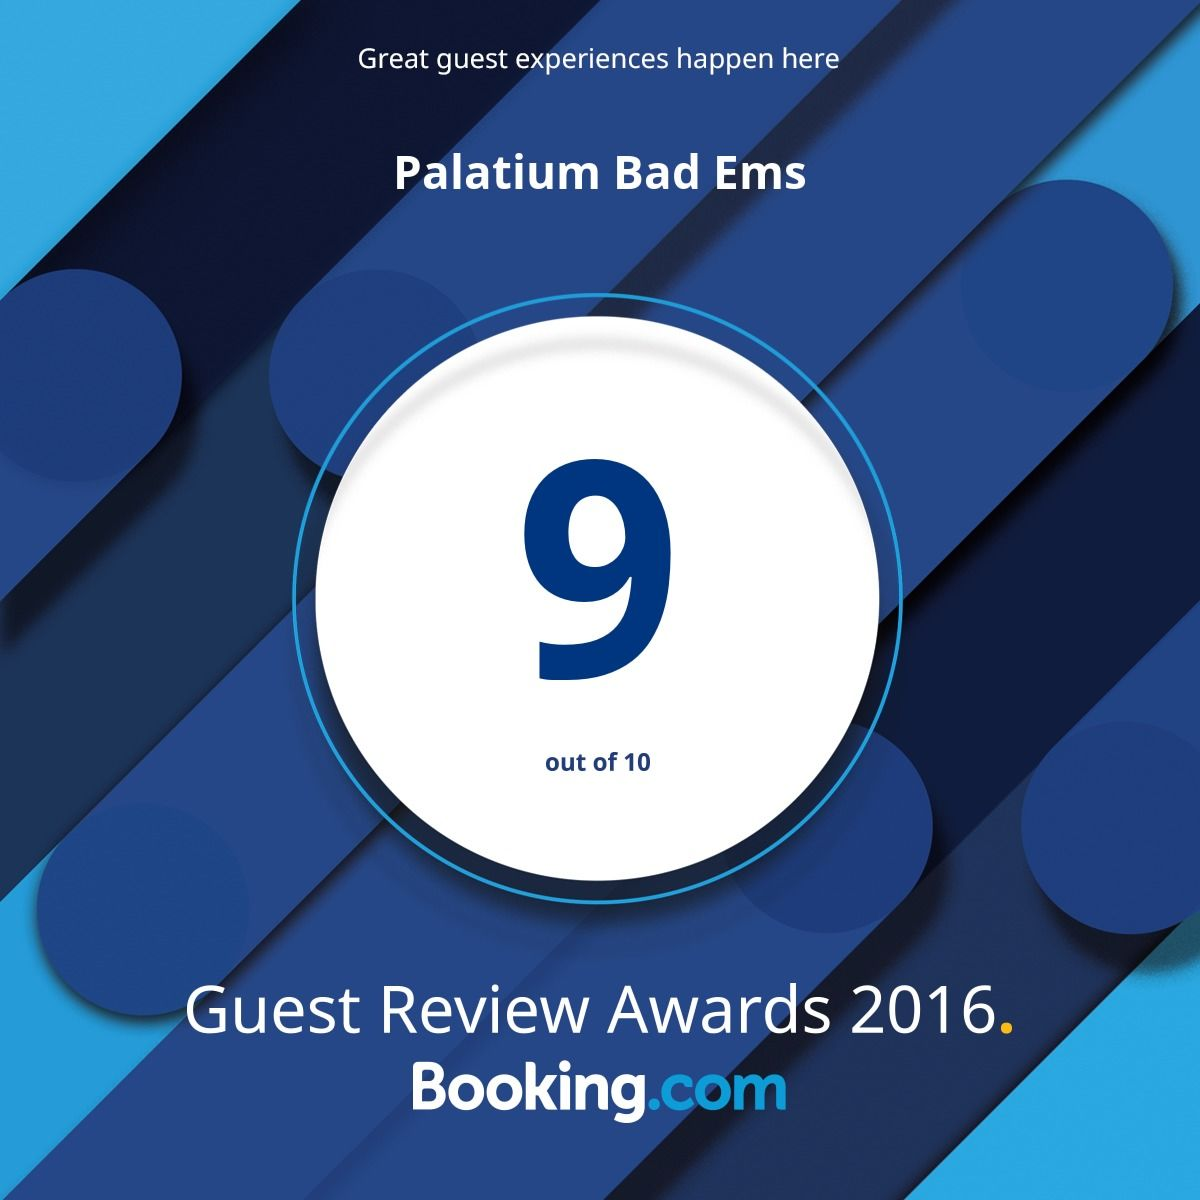 Award booking.com 2016